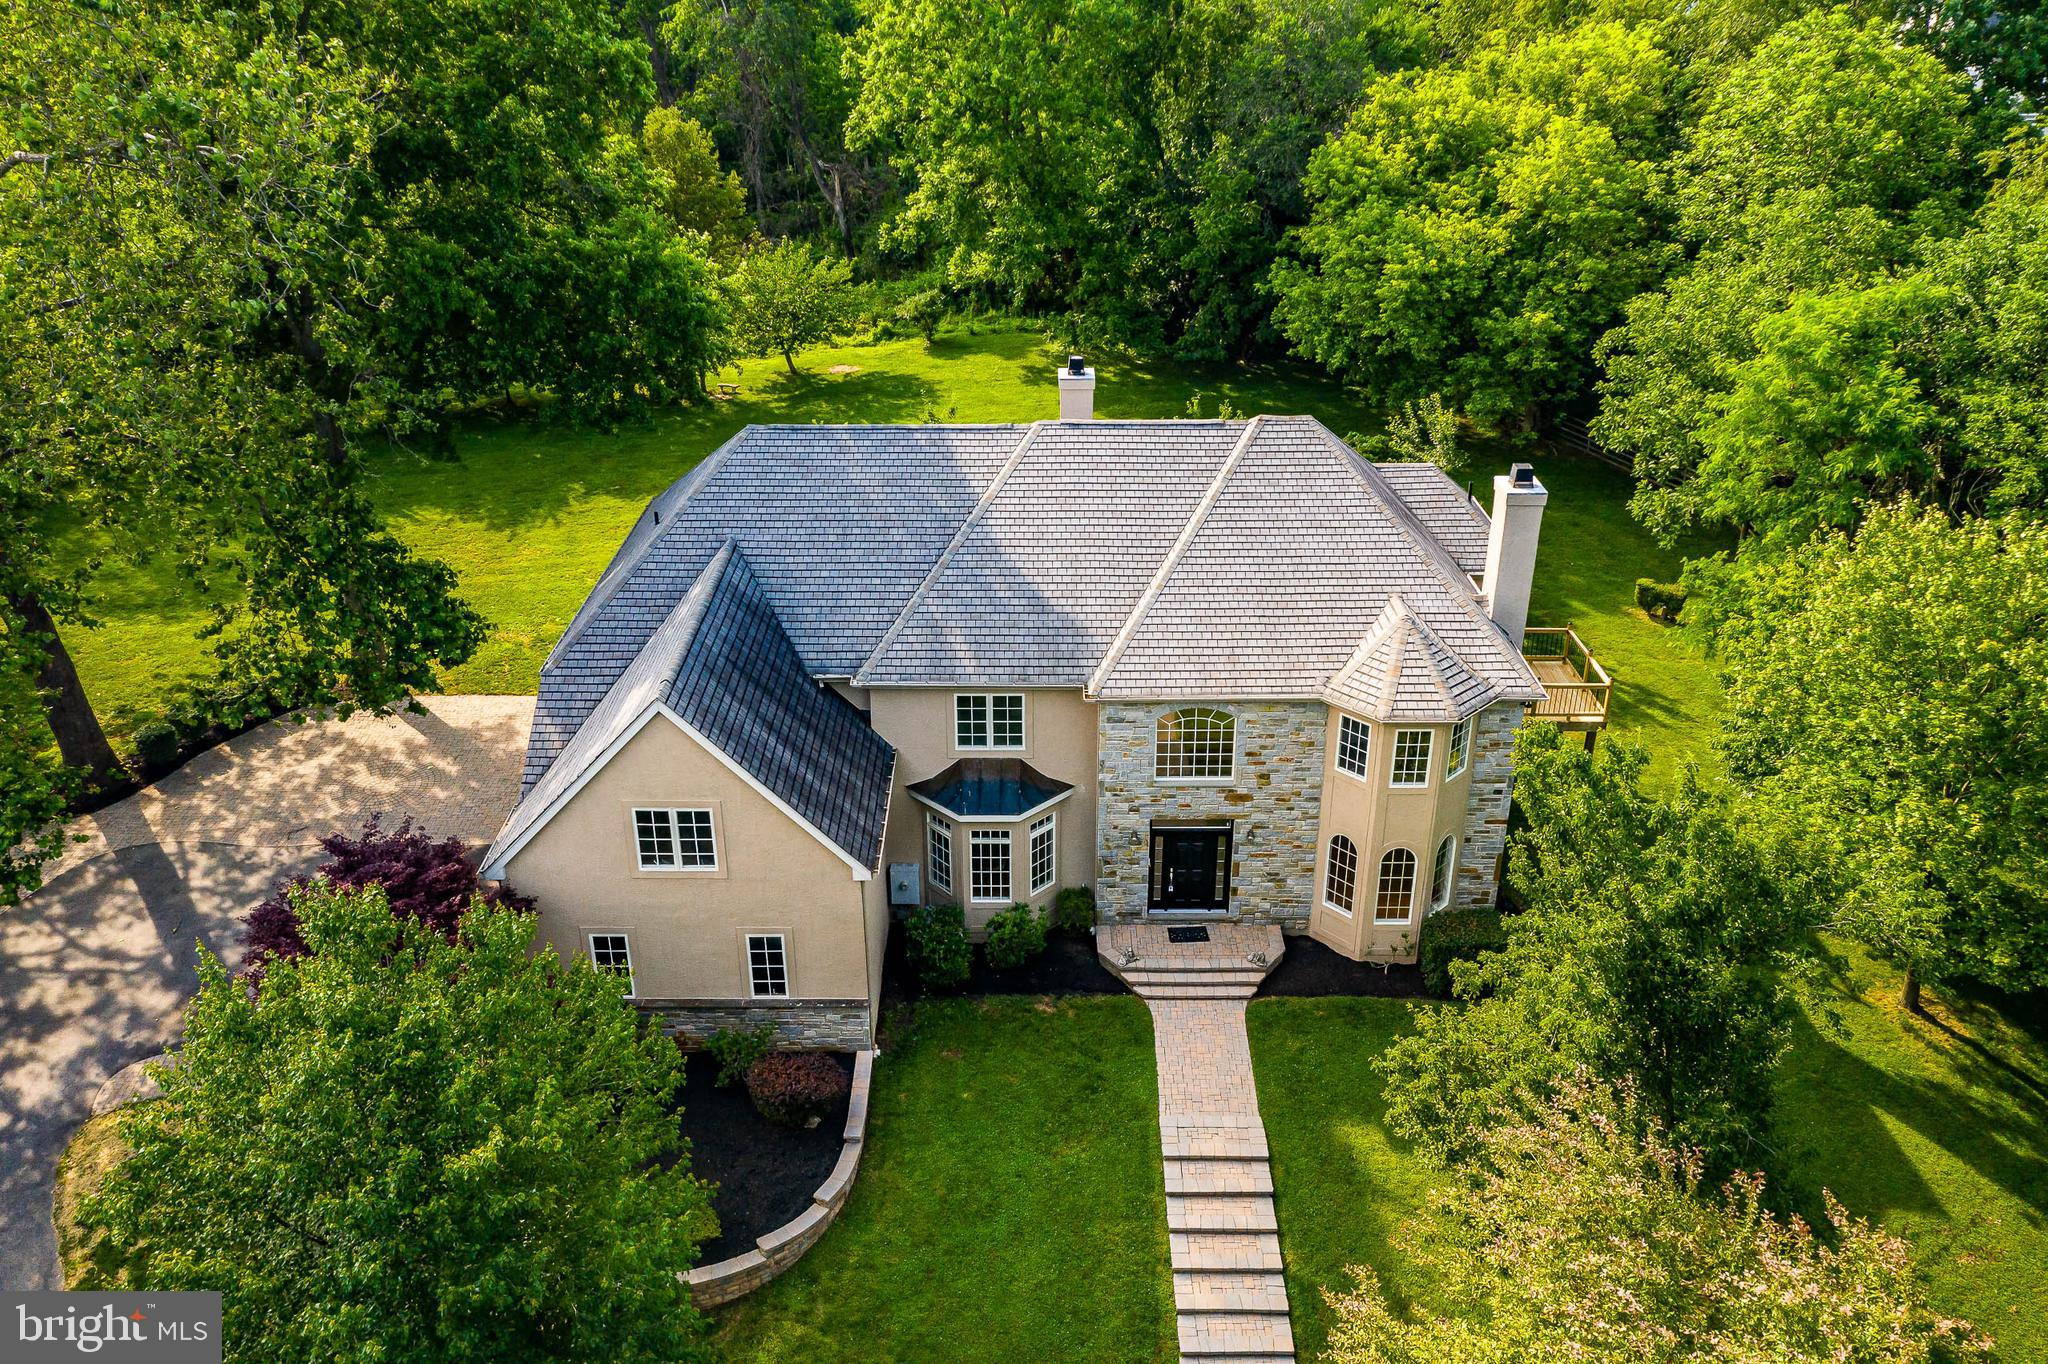 """Available for immediate settlement. Centrally located East Bradford Township Executive Single. Situated on private 1.6 acre lot with extensive hardscaping and landscaping,  level lot, perfect for entertaining and plenty of room for a pool. Outside entertainment paver patios, three car attached garage (one of the garage spaces lost 1/2 it's space to an interior room constructed). This is a front to back 2 story Colonial extensive tile flooring, site finished hardwood floors and high-hat lighting throughout. Grand 2 story entry foyer with pillars. Main floor includes living room with fireplace, large formal dining room, family room with stone fireplace off the kitchen, den/office, unique butler pantry with additional dishwasher, wine rack and stainless steel refrigerator, 42""""  kitchen cabinetry, includes island, granite countertops, stainless steel appliances, adjoining breakfast room, extensive windows offers natural light, French door leads to outside entertainment area, mud room, 2 conveniently located half baths, additional main floor room could be used for numerous ways and is currently used as an additional office space includes entrance from the garage. Second floor offers 5 bedrooms , 3 full baths, to include master bed with gas fireplace, tray ceiling, private outside entertainment deck, lavish master bath. 5th bedroom includes large separate room suitable as a sitting room, gym equipment etc. Natural gas, on site septic and well. There are front and back staircases."""